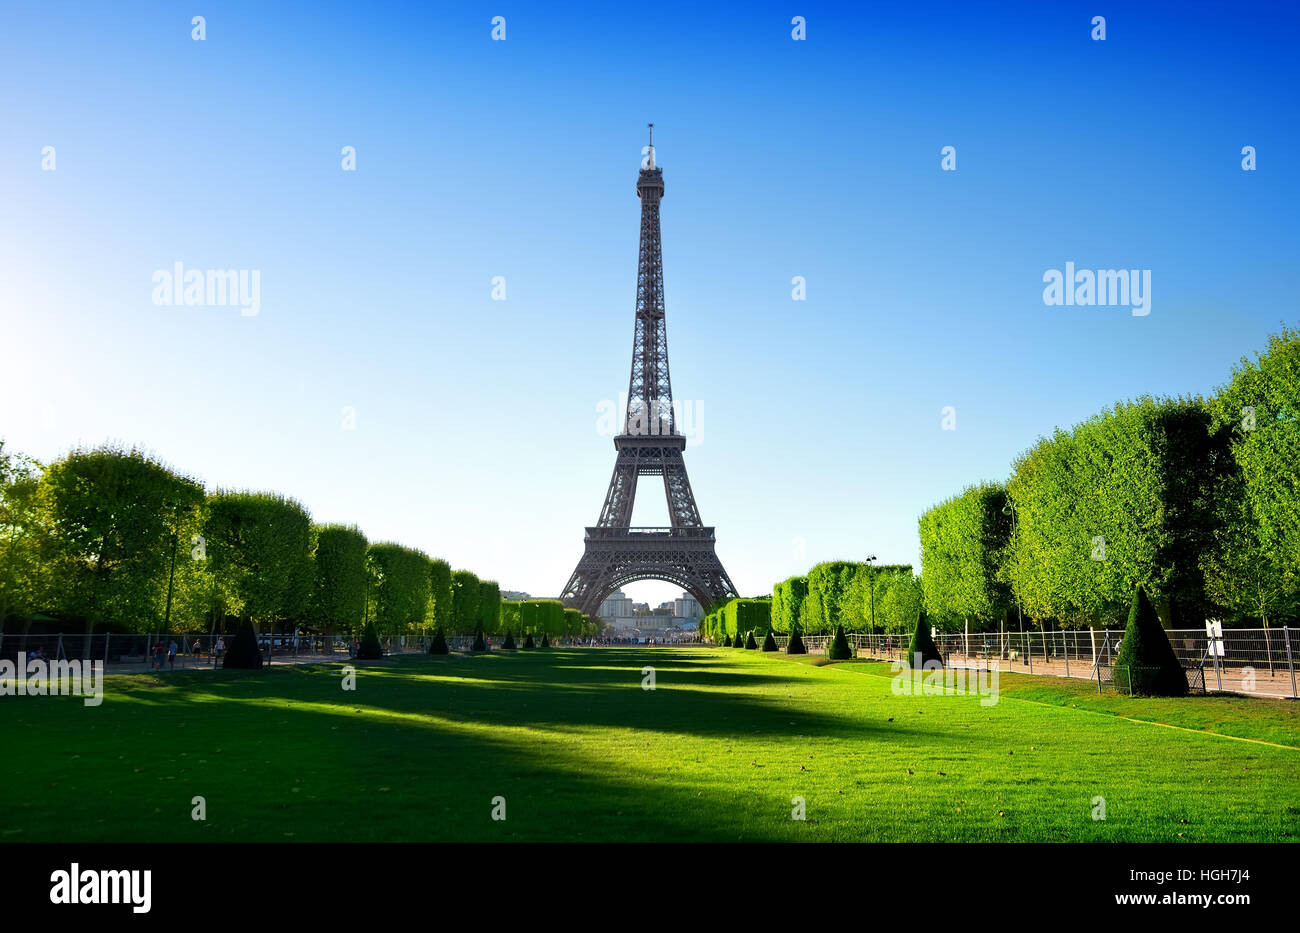 Eiffel Tower view from Champ de Mars in Paris, France - Stock Image